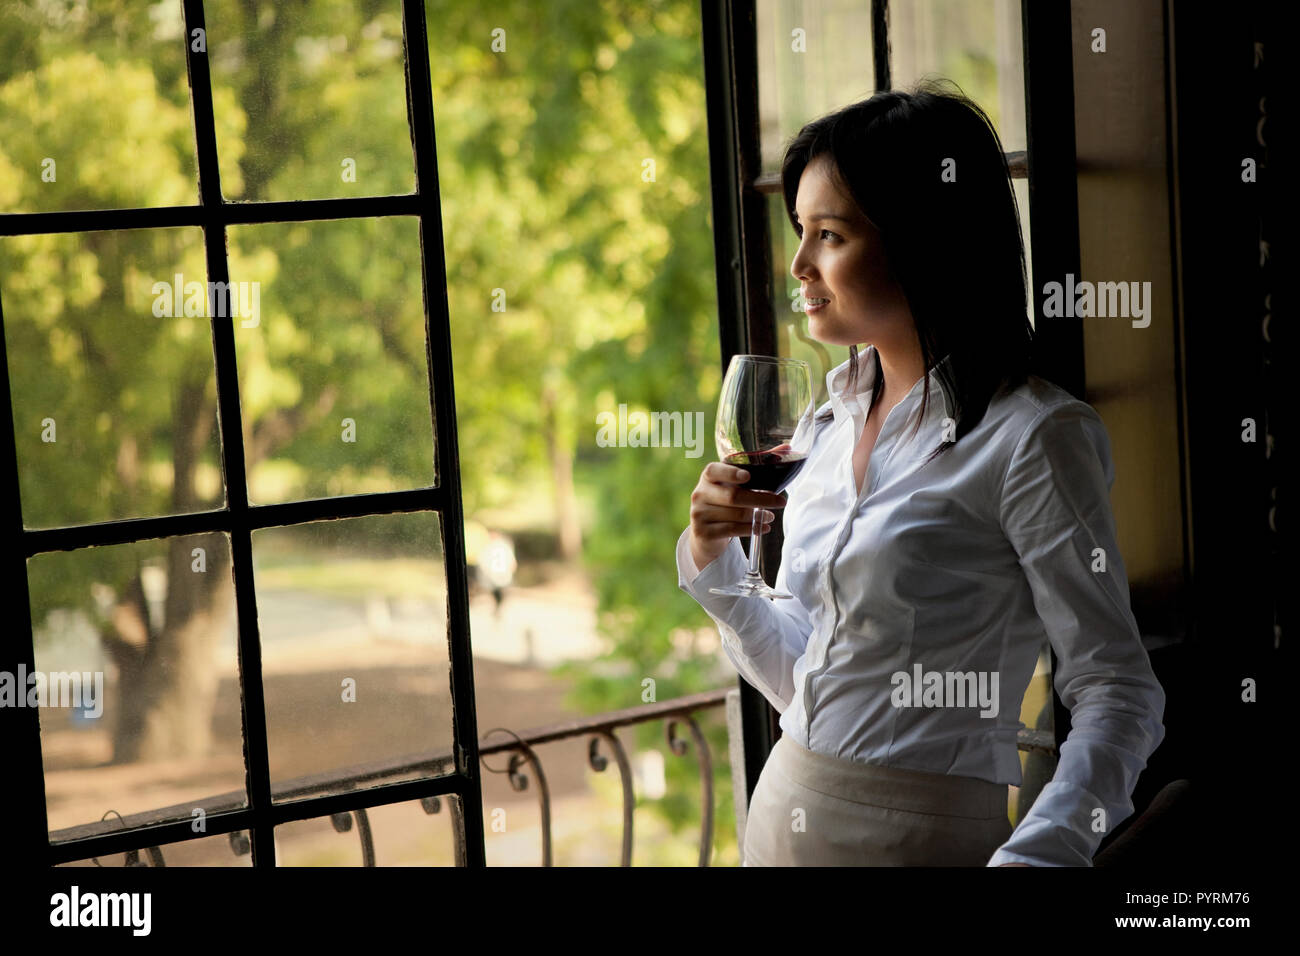 Mid-adult woman holding a glass of red wine while looking out a window.. - Stock Image